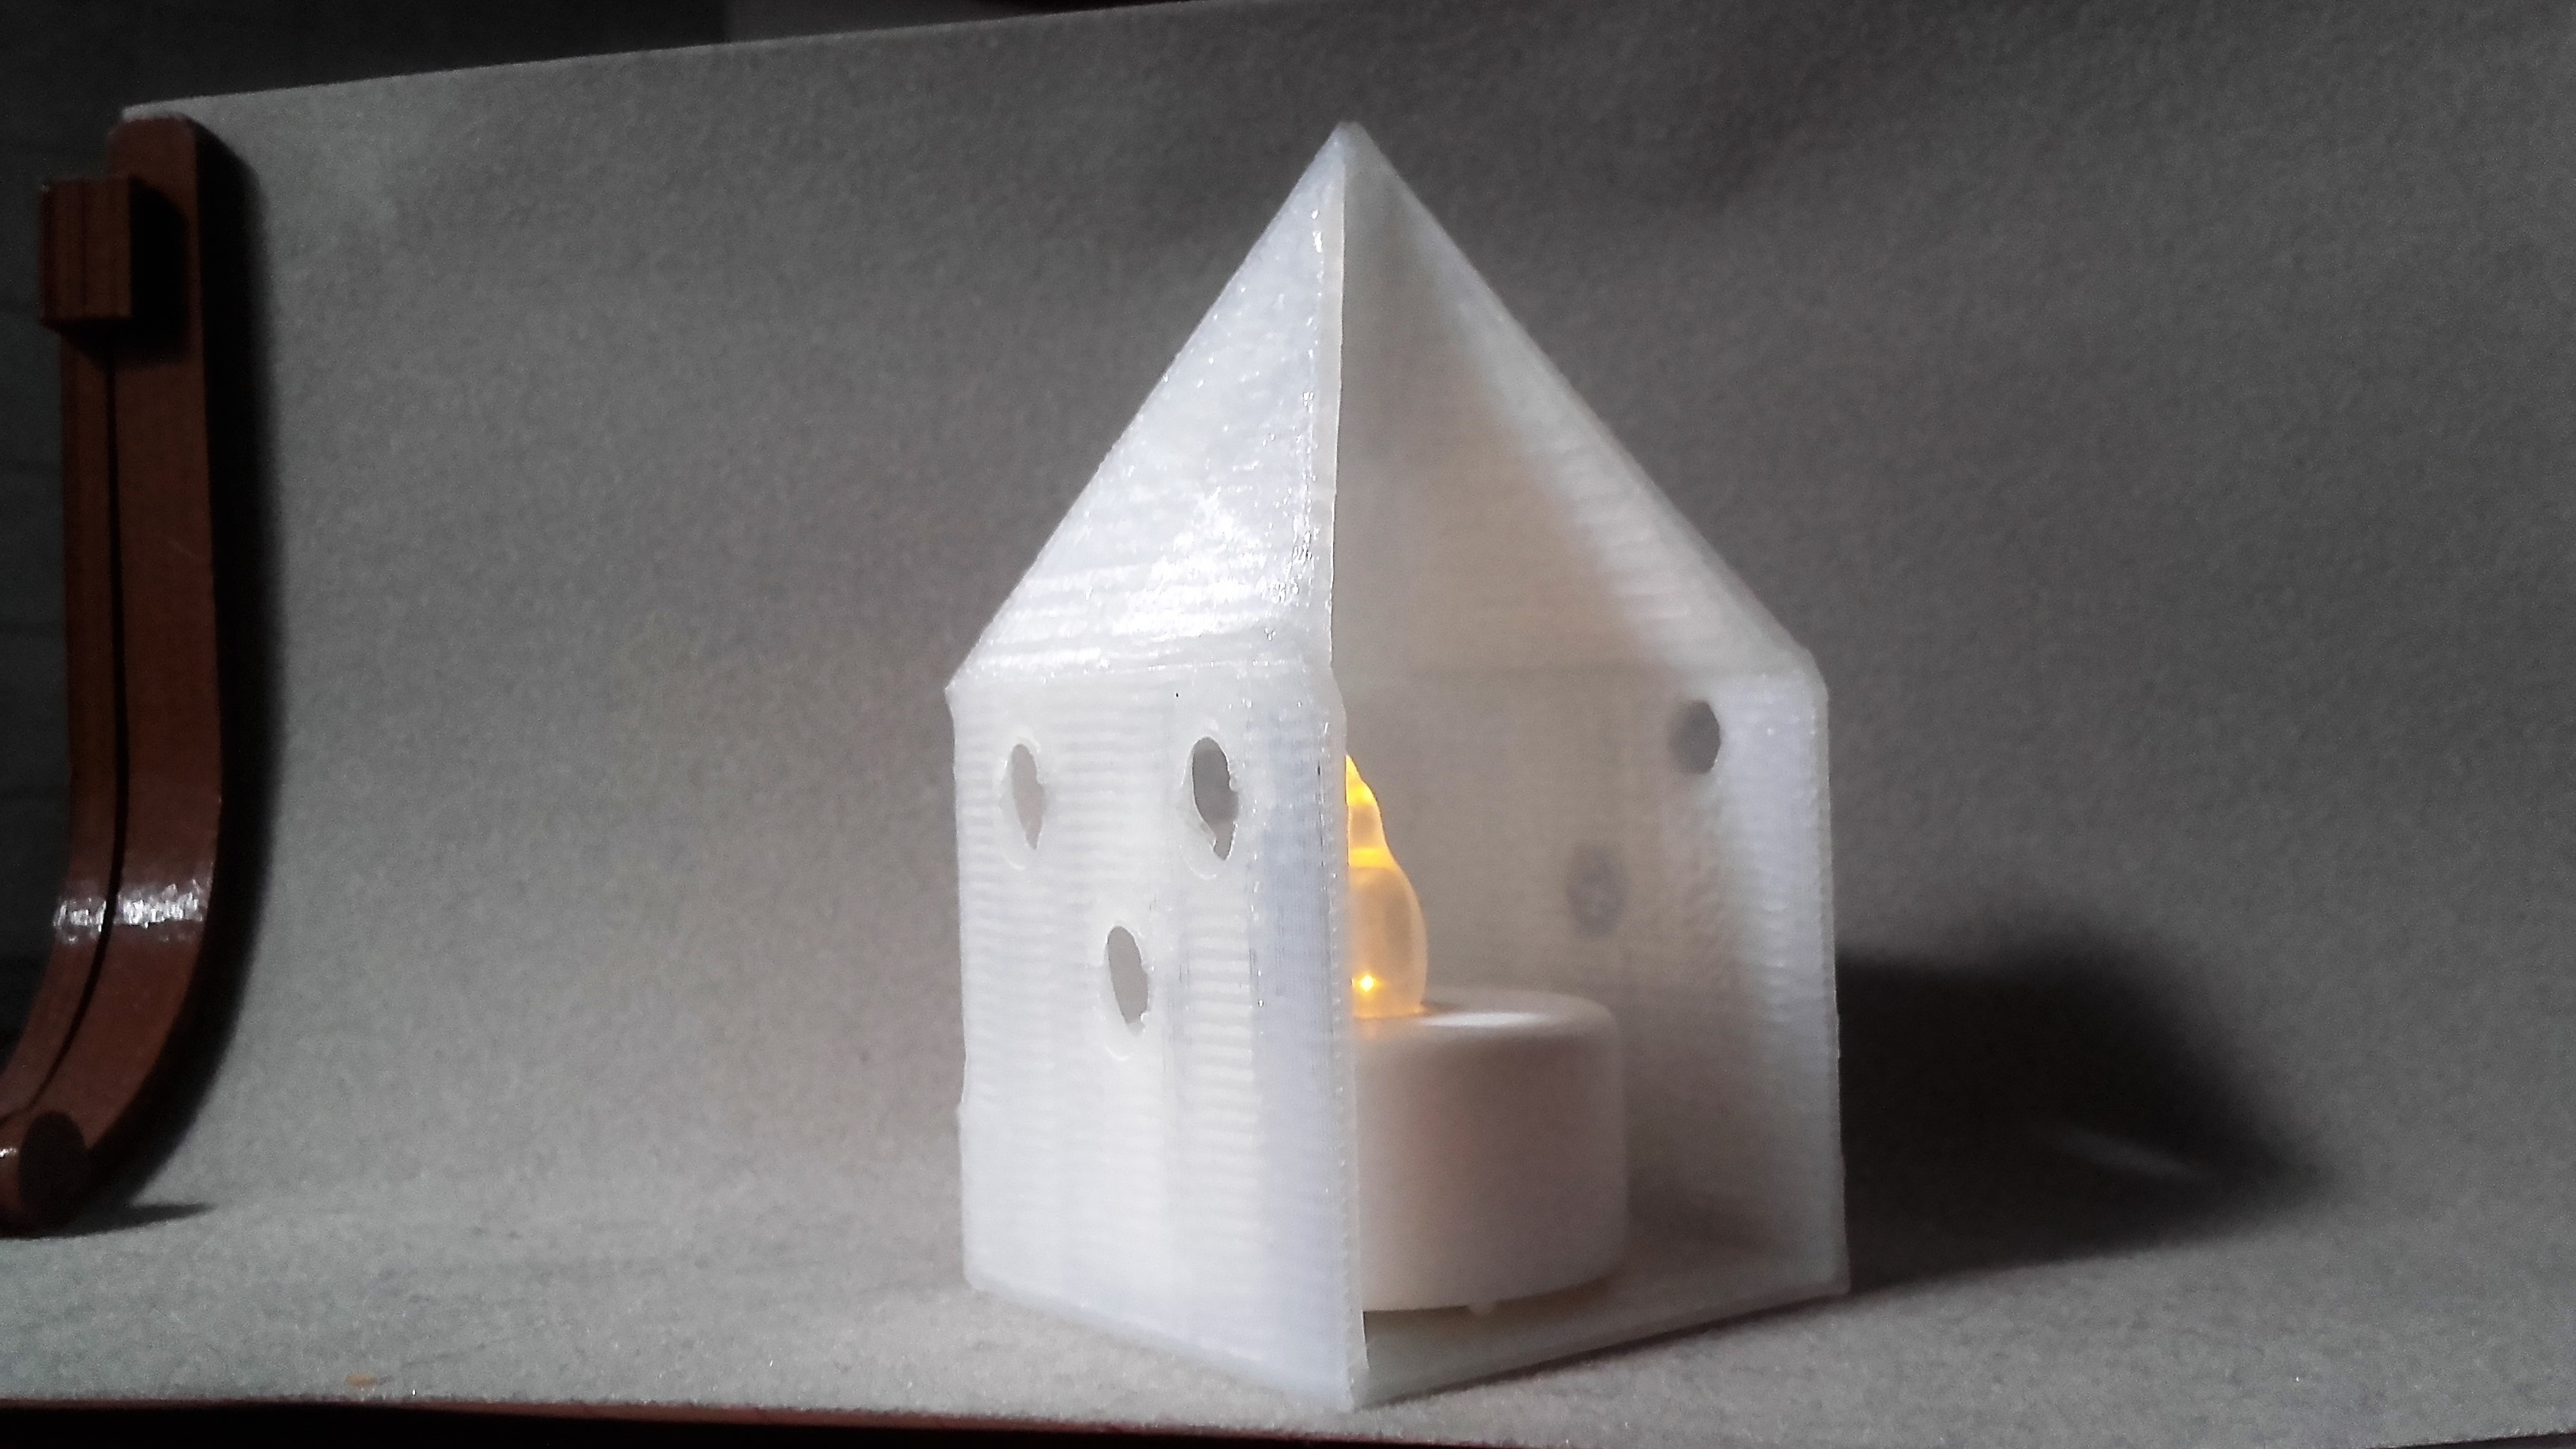 20170608_180206.jpg Download STL file Small illuminated house • 3D printable template, catf3d